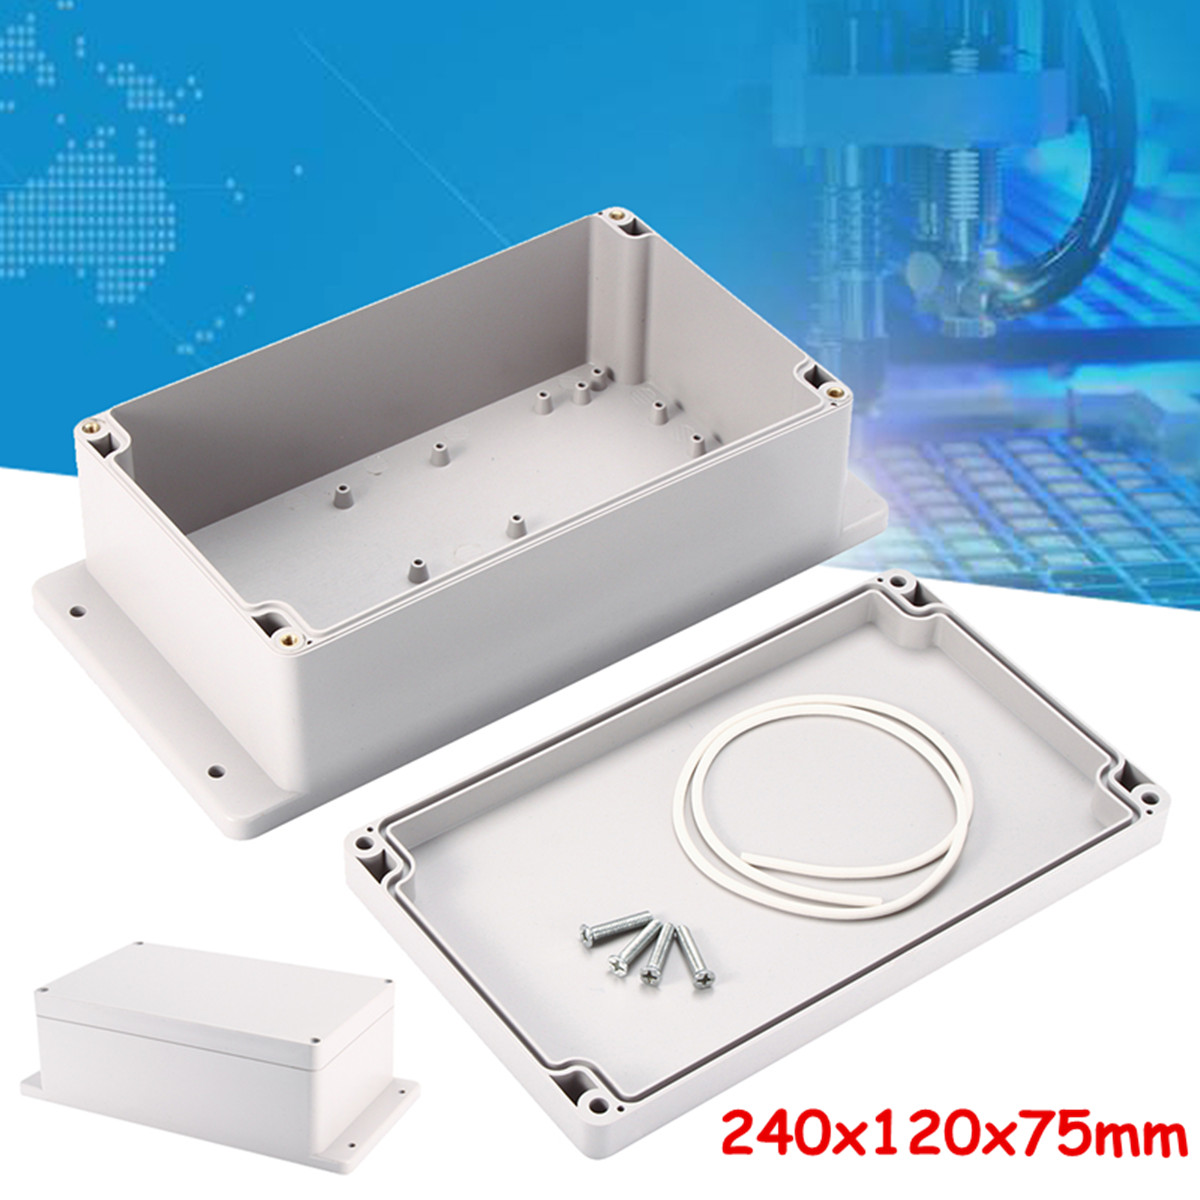 240x120x75mm ABS Waterproof Enclosure Box font b Electronic b font Project Instrument Case Electrical Project Box